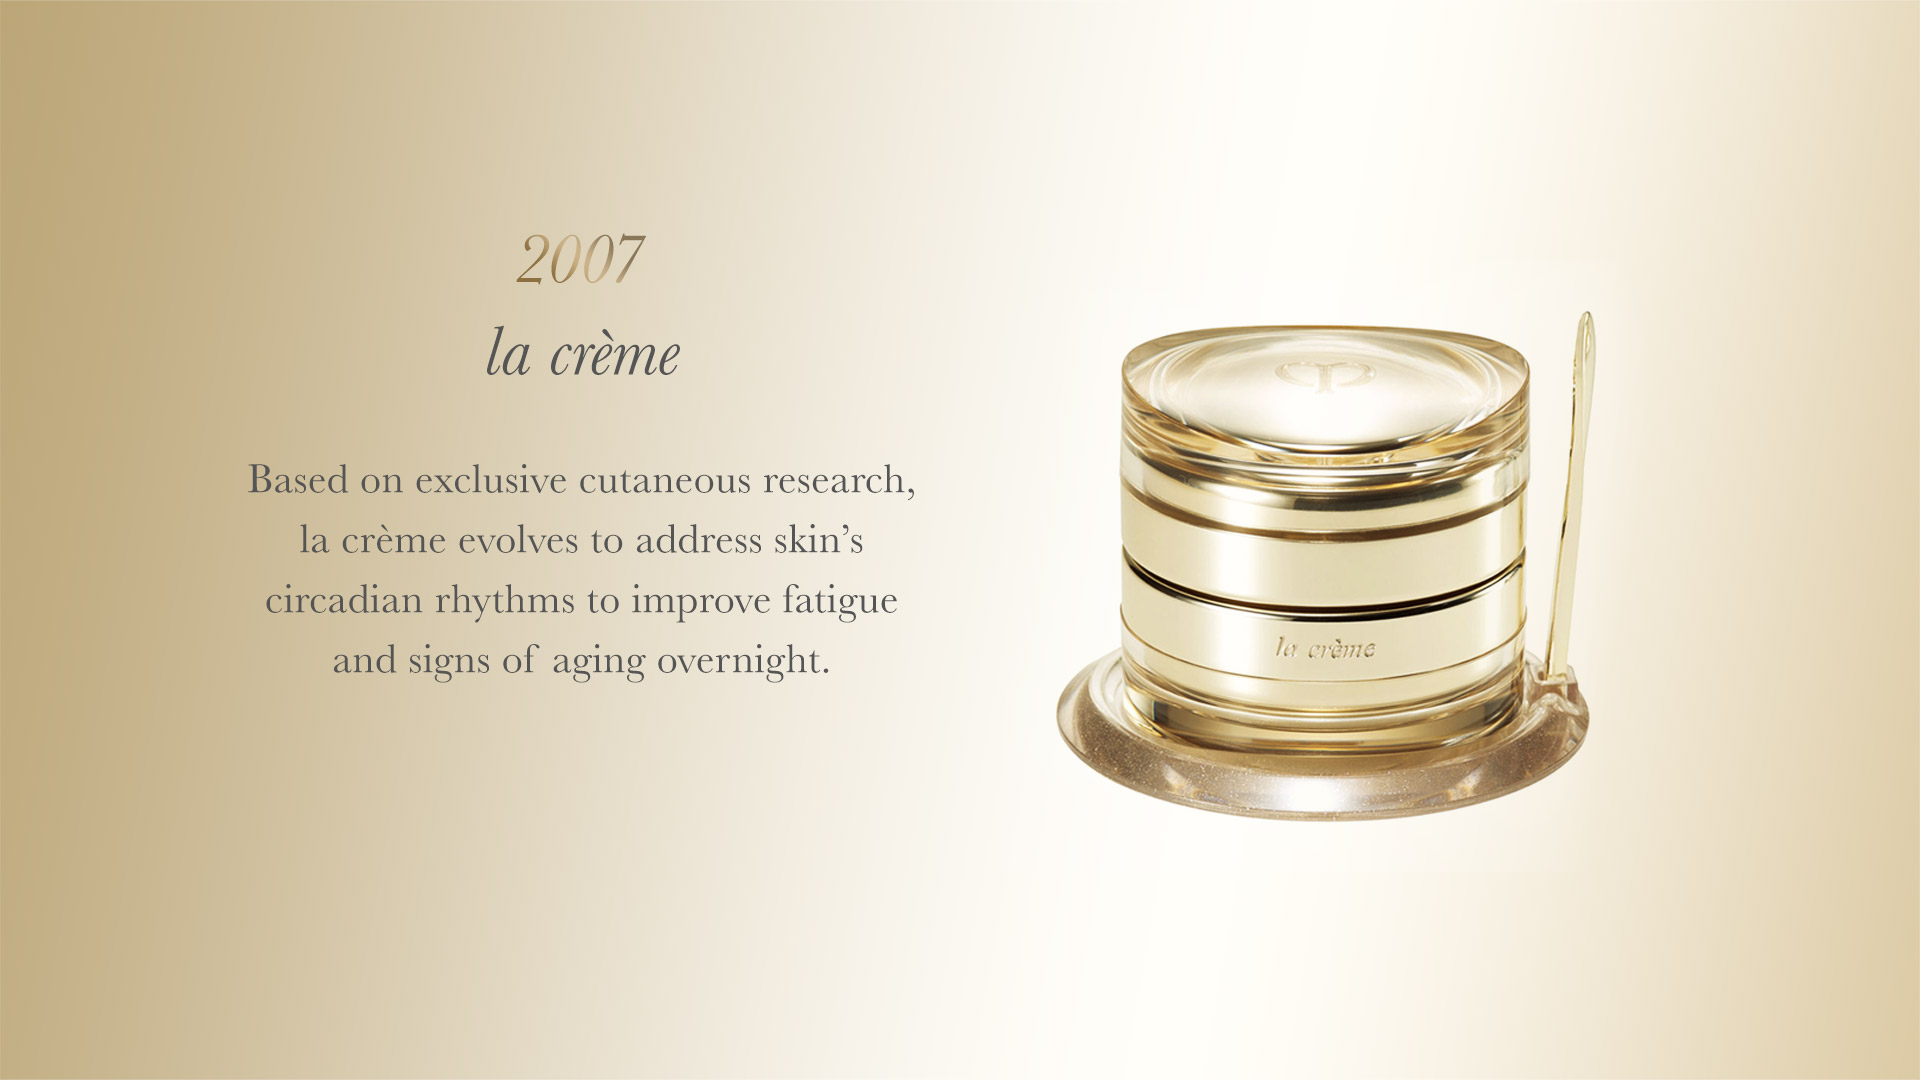 Based on exclusive cutaneous research, la créme evolves to address skin's circadian rhythms to improve fatigue and signs of aging overnight.